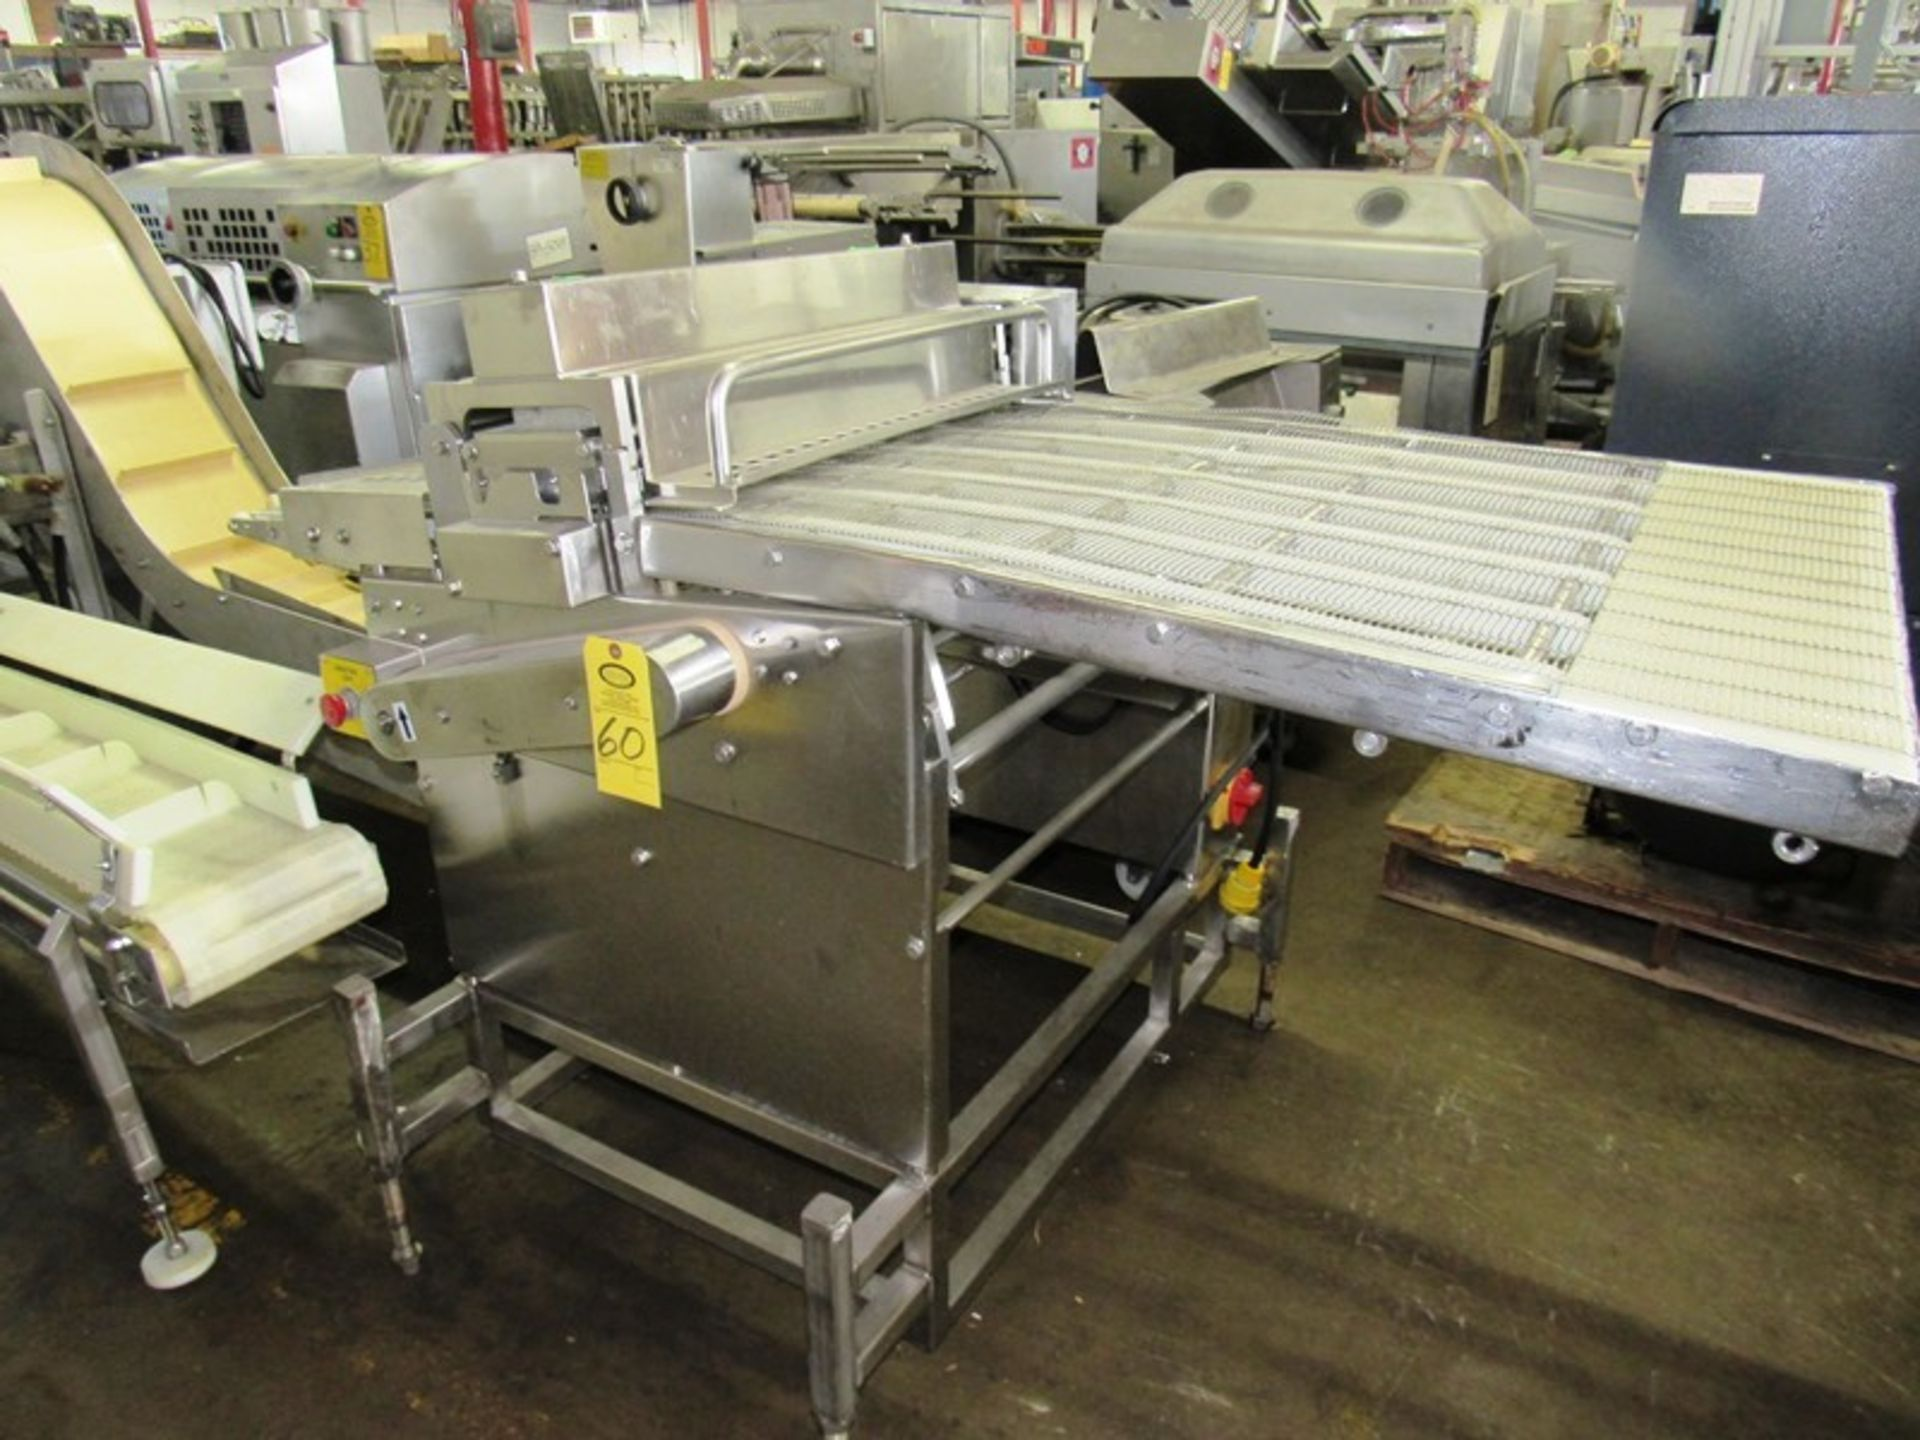 Lot 60 - Formax Mdl. MC-27 Cuber/Perforator, stainless steel belt, top & bottom perforating rollers